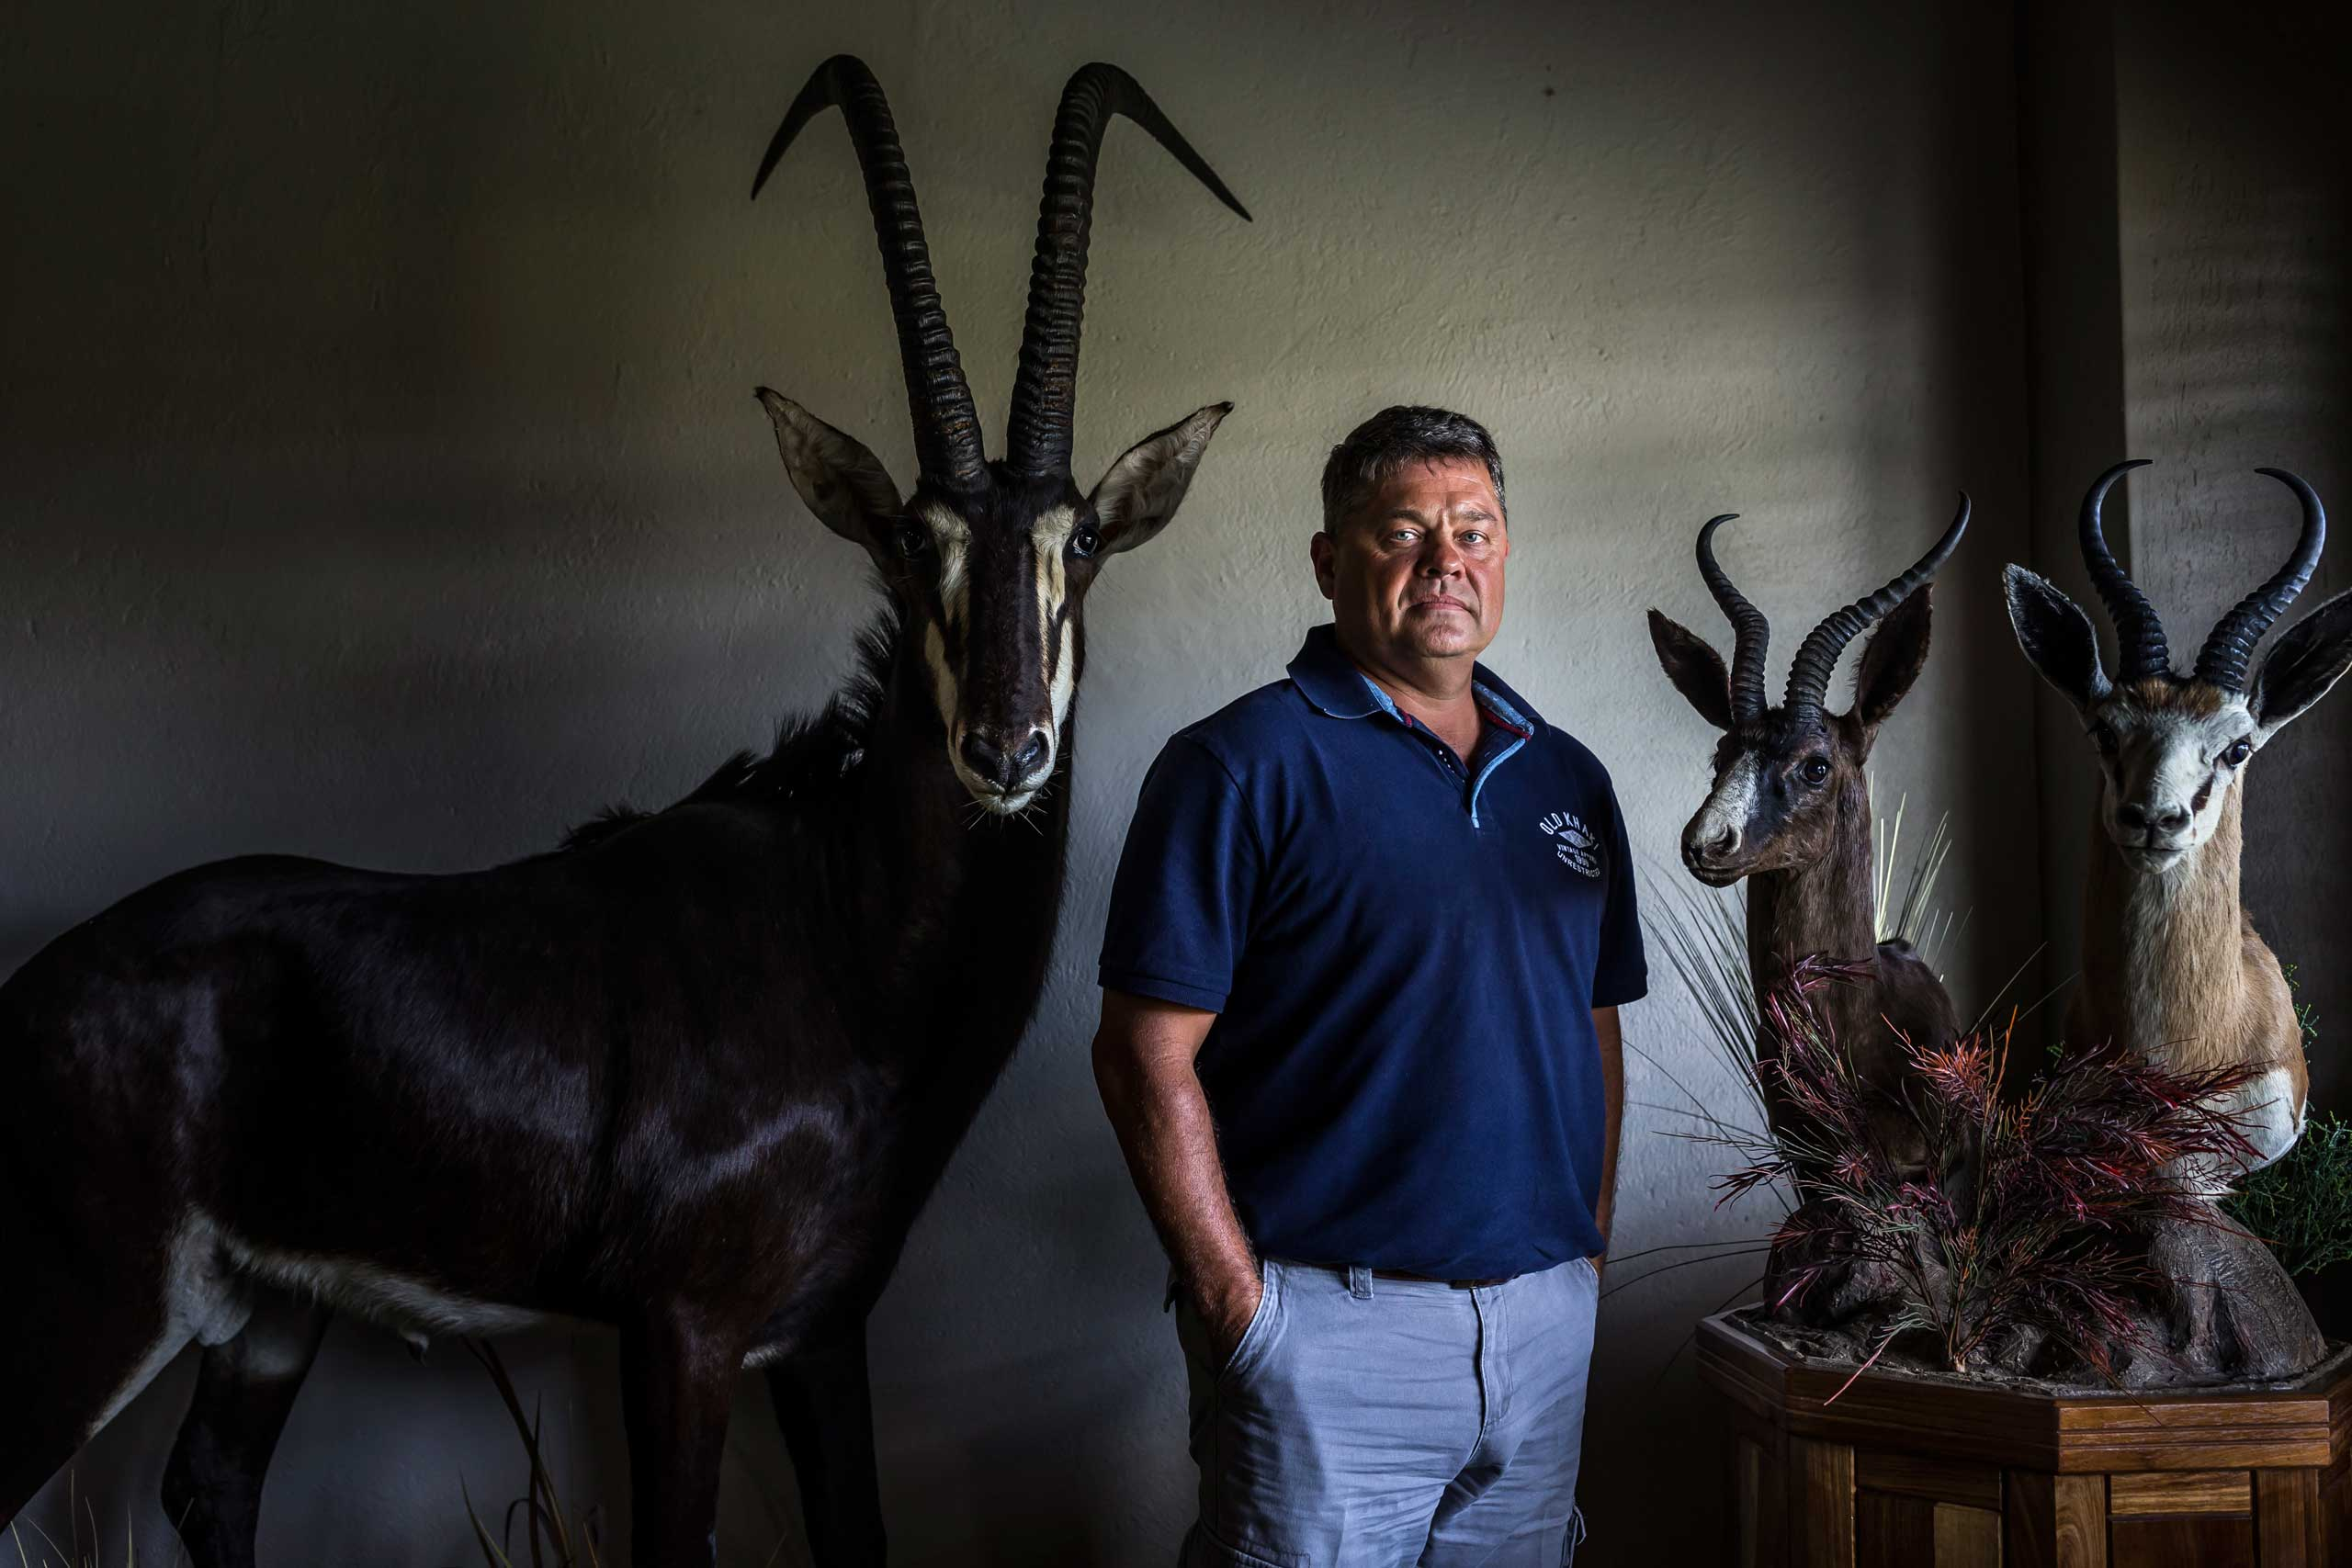 Dawie Groenewalt, South Africa's alleged Rhino horn kingpin and the subject of a six-year-old court case involving multiple charges related to illegal Rhino horn theft and money laundering amongst other charges. He is seen on his game farm in Polokwane where he breeds high-end game for sale and hunting purposes.